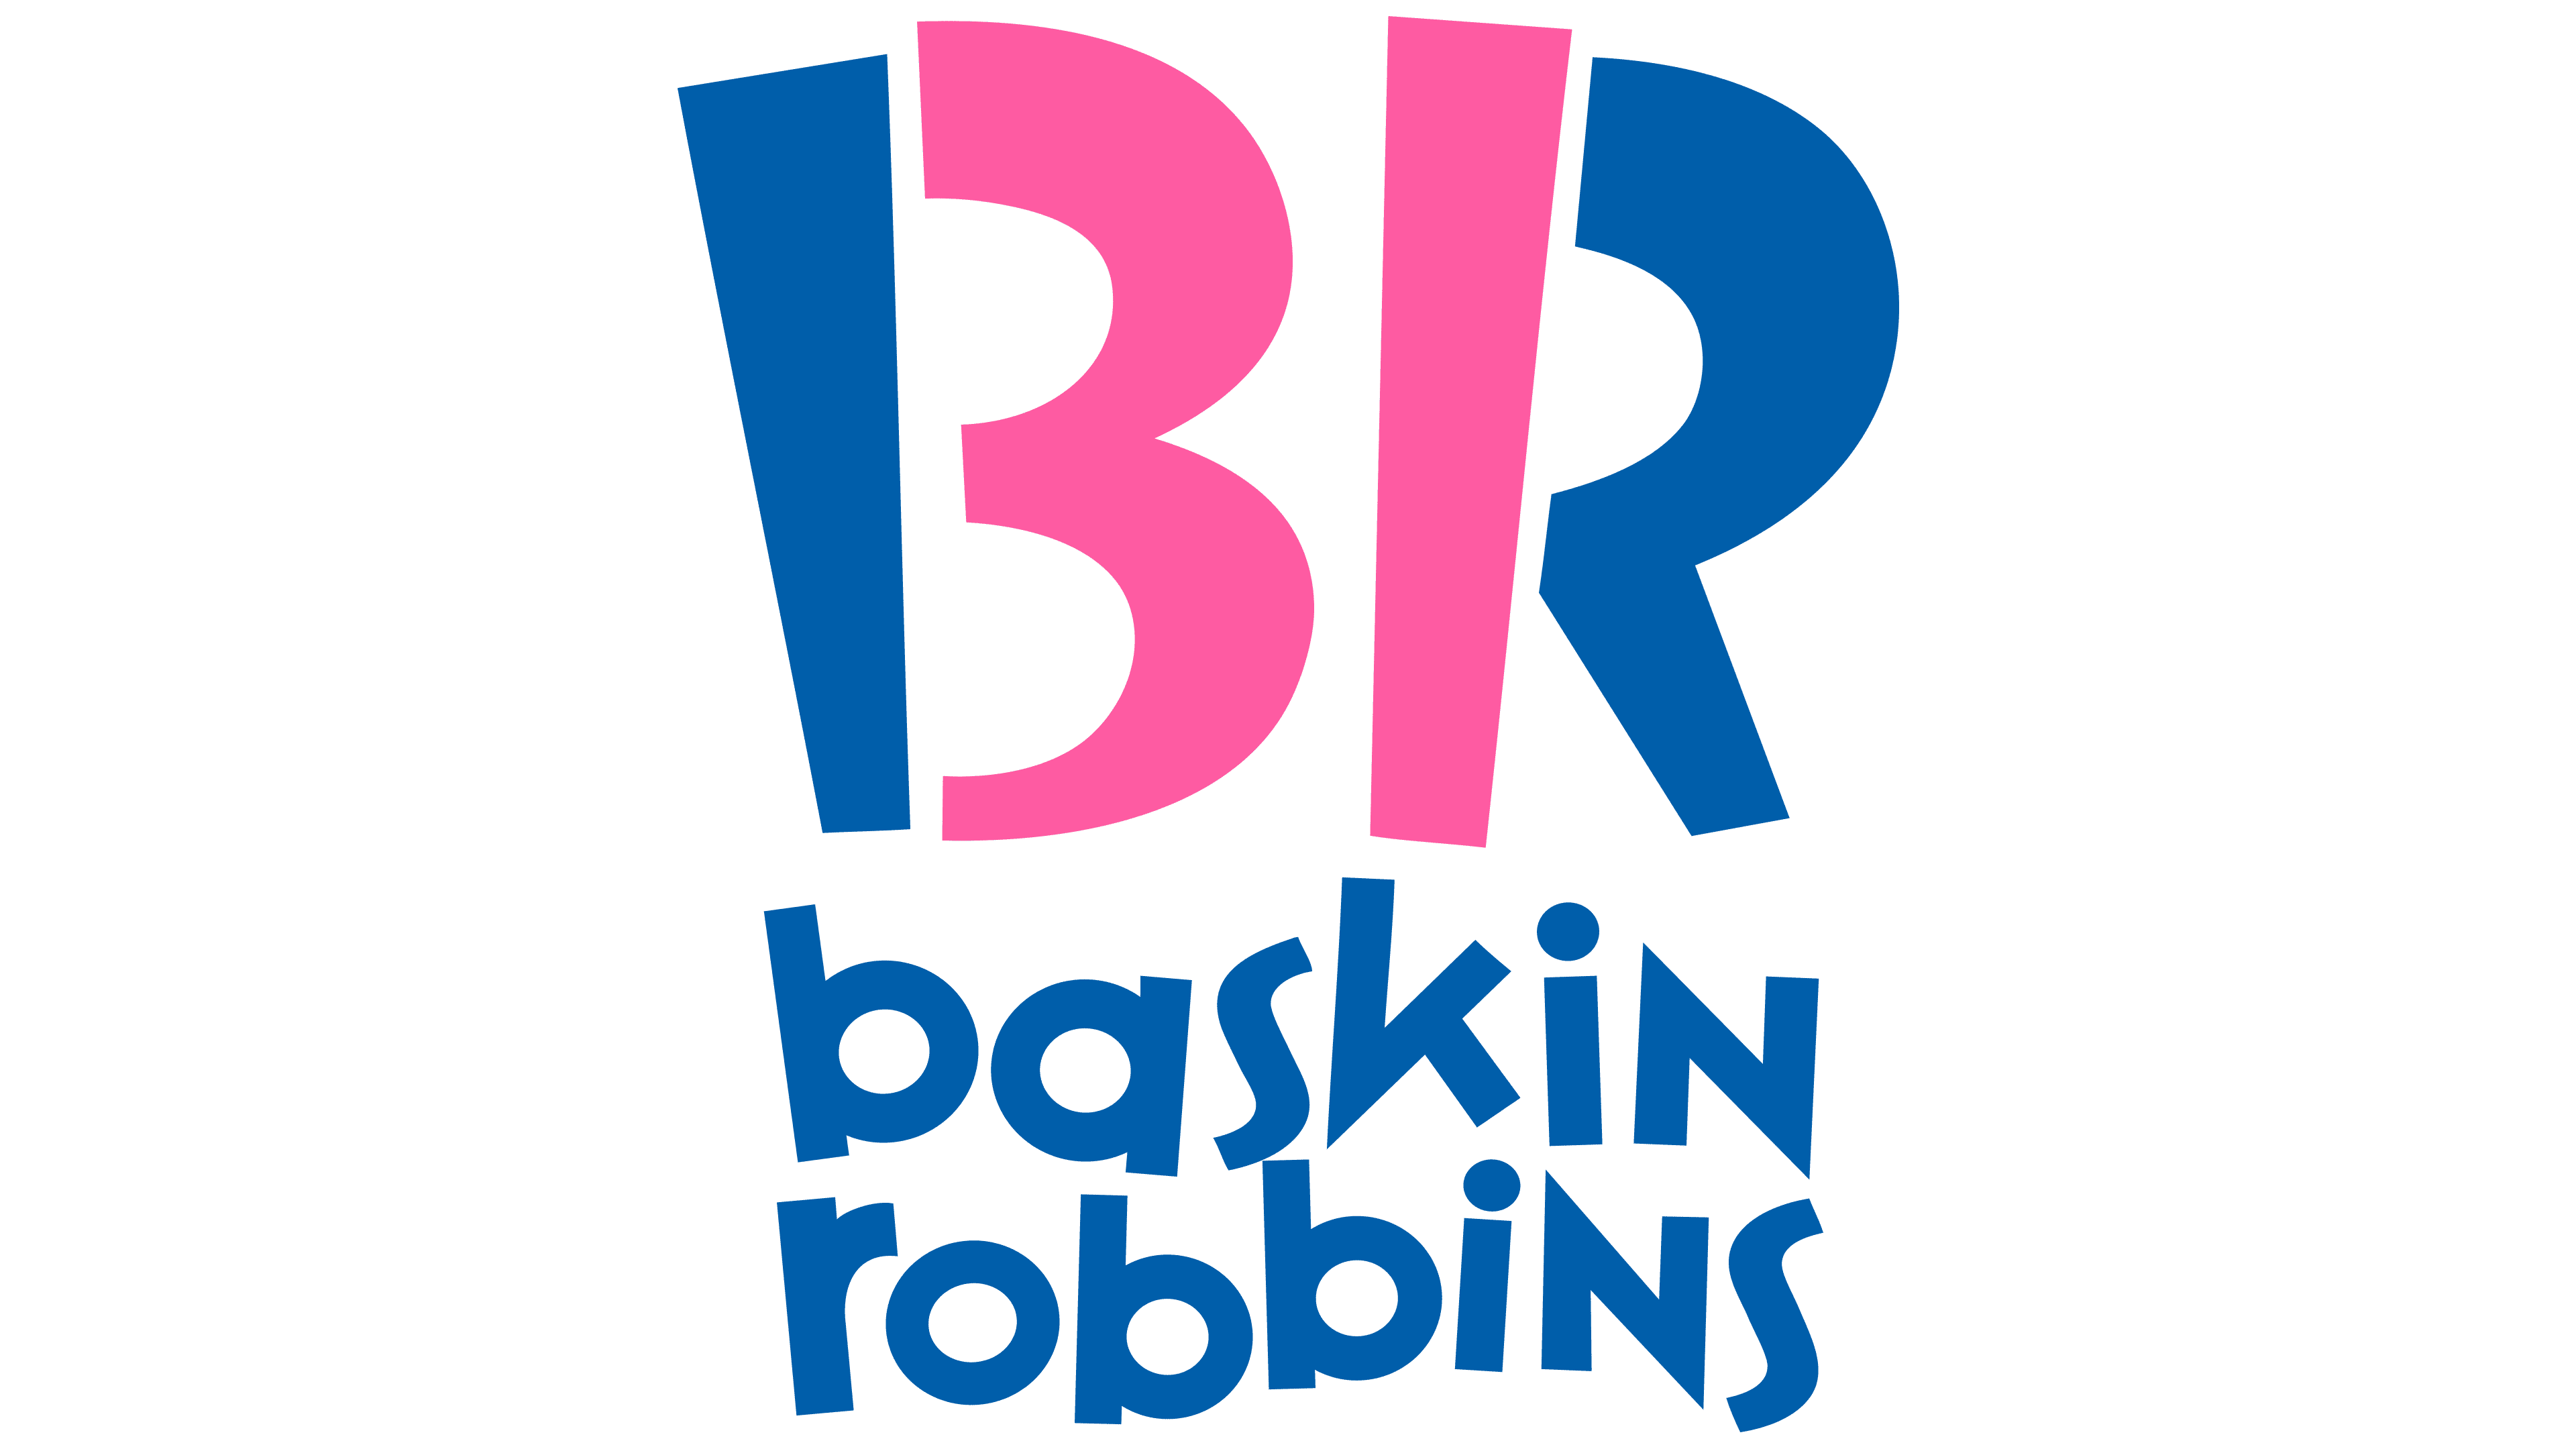 Baskin Robbins Logo | The most famous brands and company logos in the world